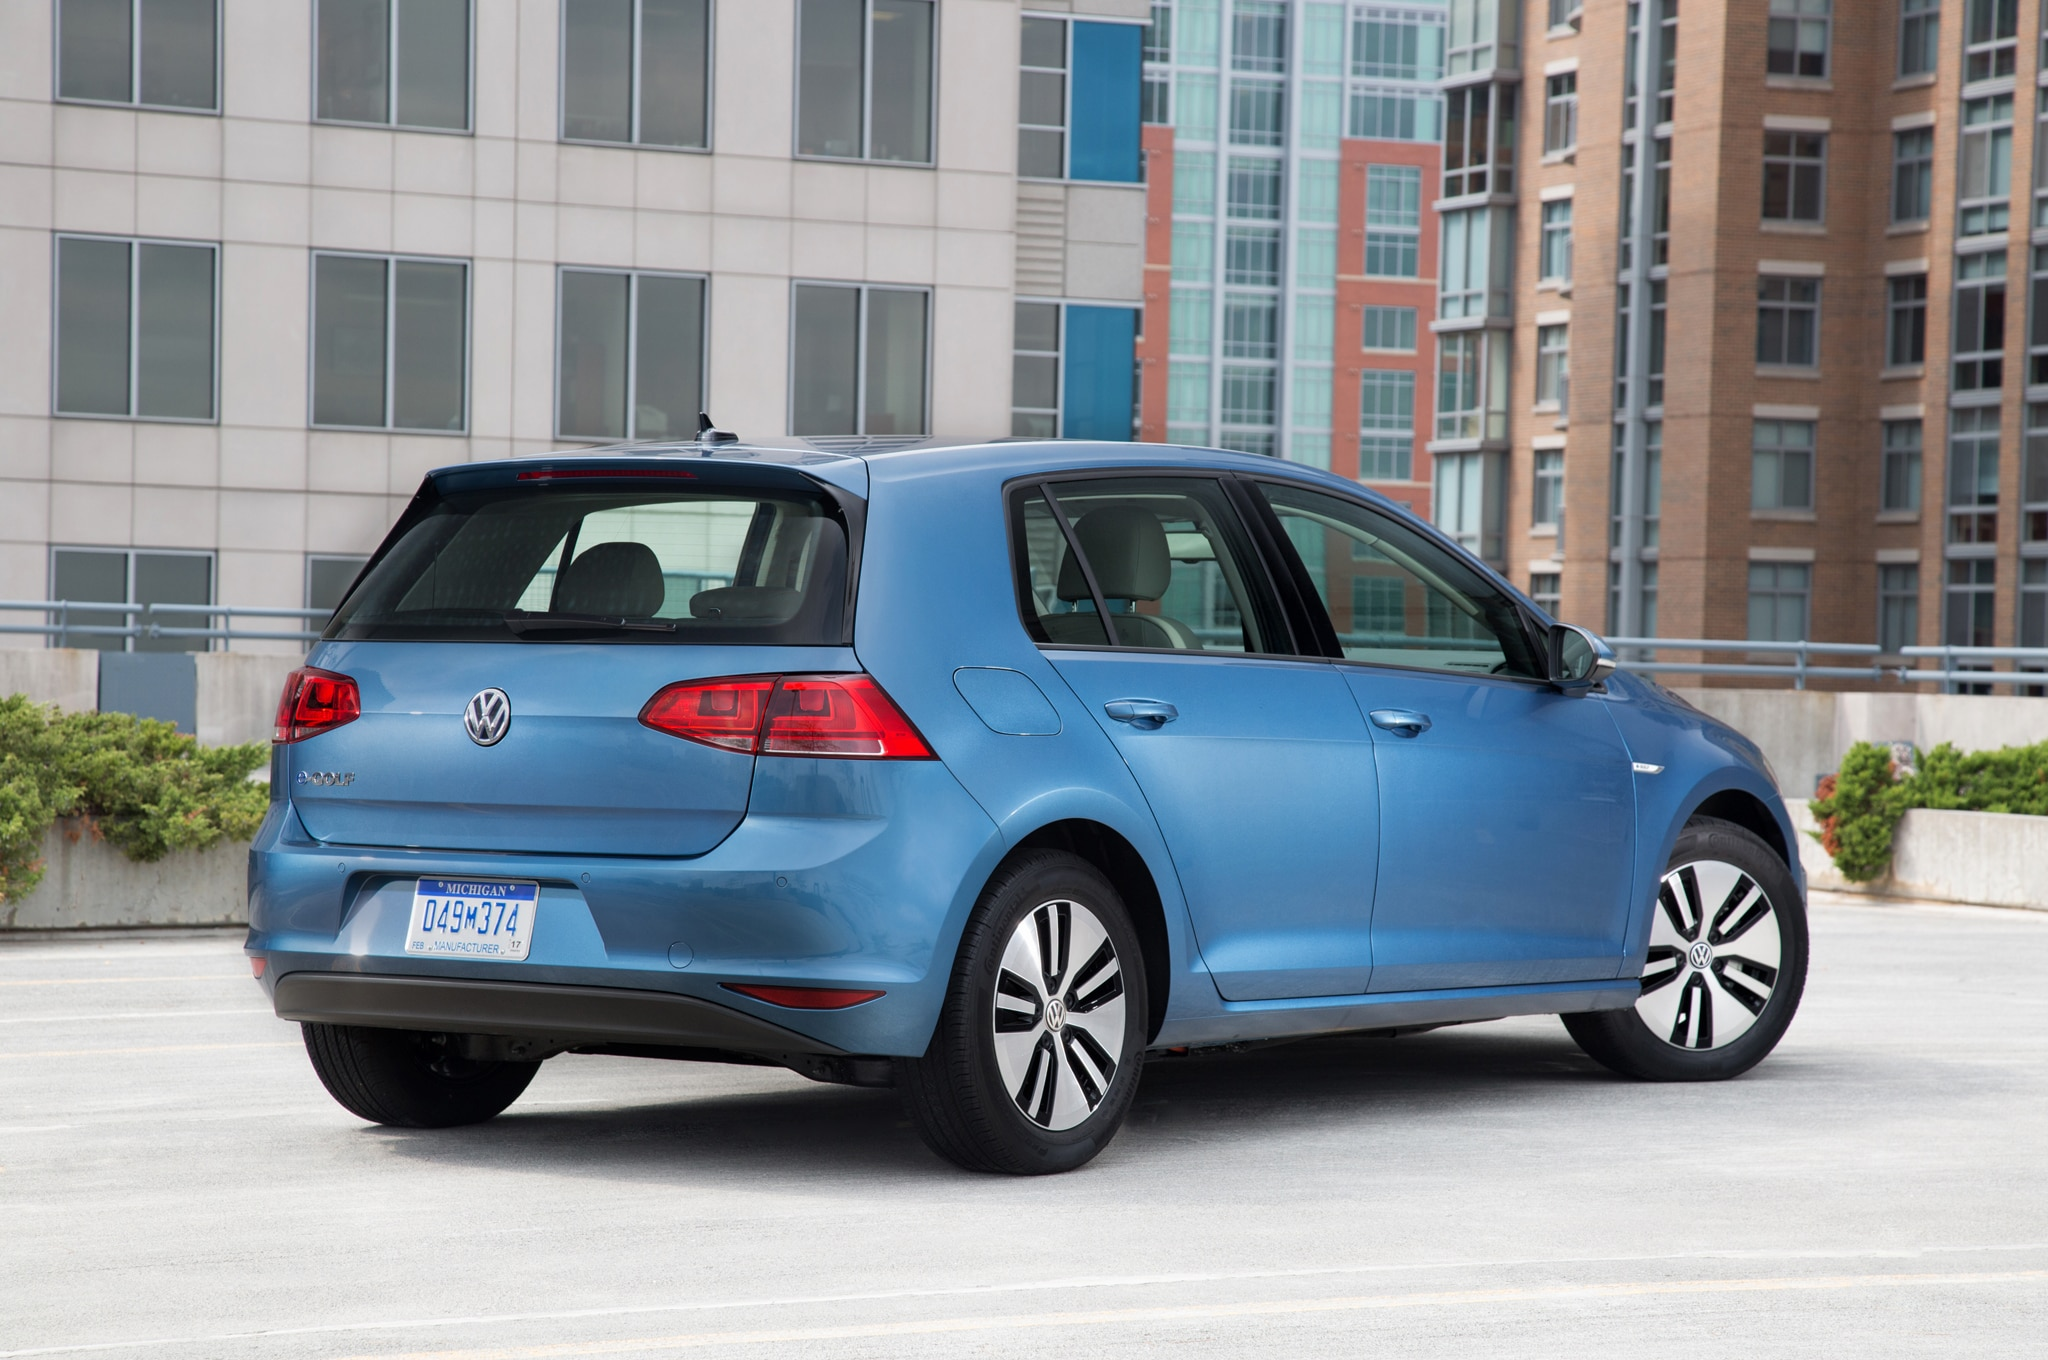 volkswagen e golf to get 30 percent driving range improvement. Black Bedroom Furniture Sets. Home Design Ideas